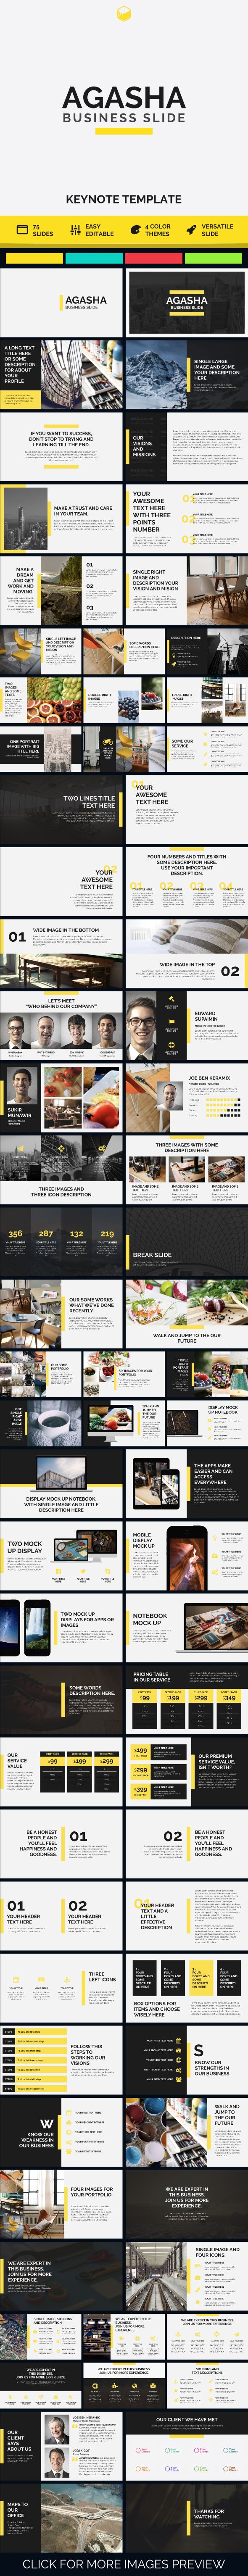 AGASHA - Business Keynote - #Business #Keynote Templates Download here: https://graphicriver.net/item/agasha-business-keynote/19678982?ref=alena994